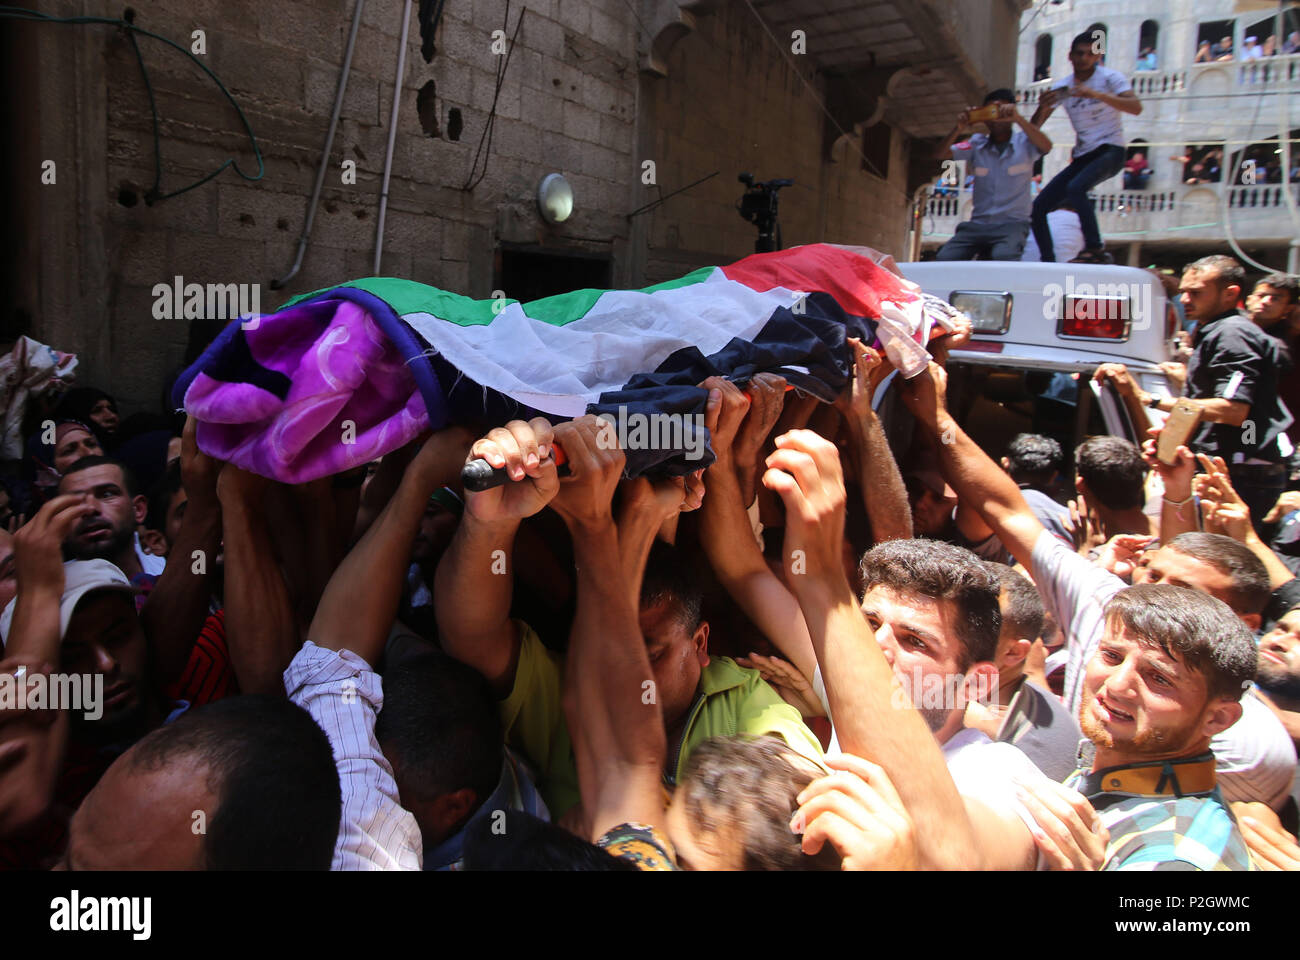 (180602) -- GAZA, June 2, 2018 (Xinhua) -- Mourners carry the body of Razan al-Najjar during her funeral in the southern Gaza Strip City of Khan Yunis, on June 2, 2018. Thousands of outraged Palestinian mourners buried on Saturday the female paramedic who was shot dead by Israeli gunfire close to Gaza's border with Israel.   (Xinhua/Khaled Omar)(rh) - Stock Image